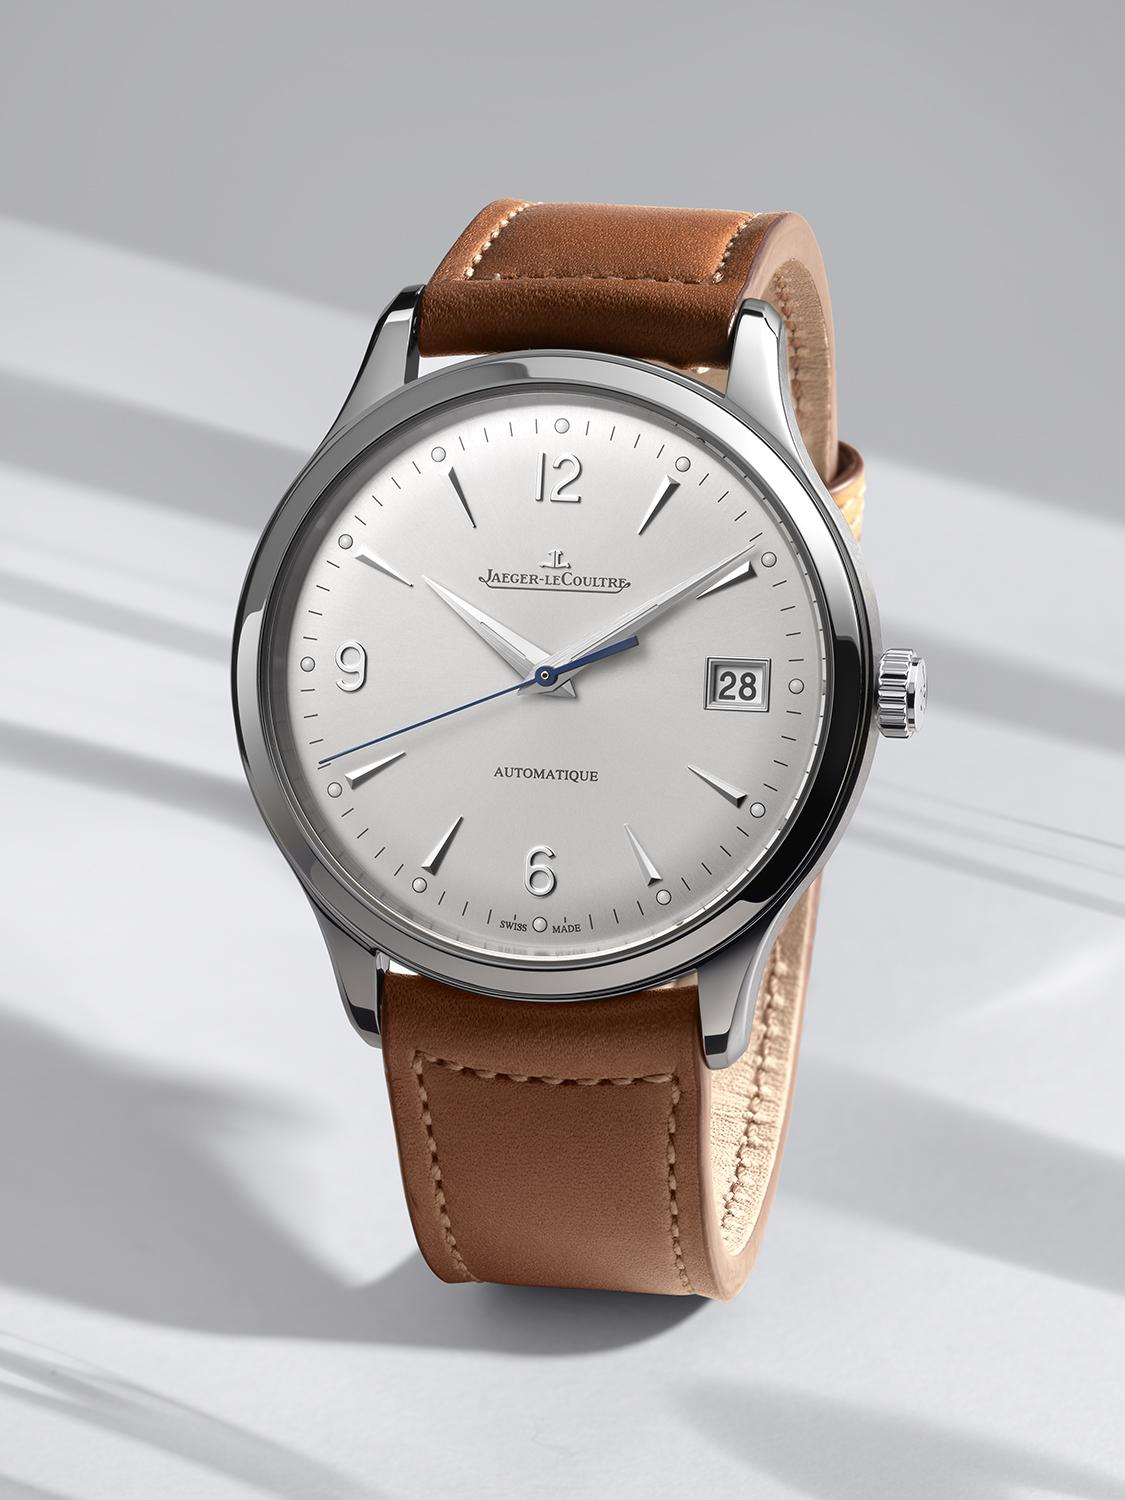 New Jaeger-LeCoultre Master Control Date Watches for 2020